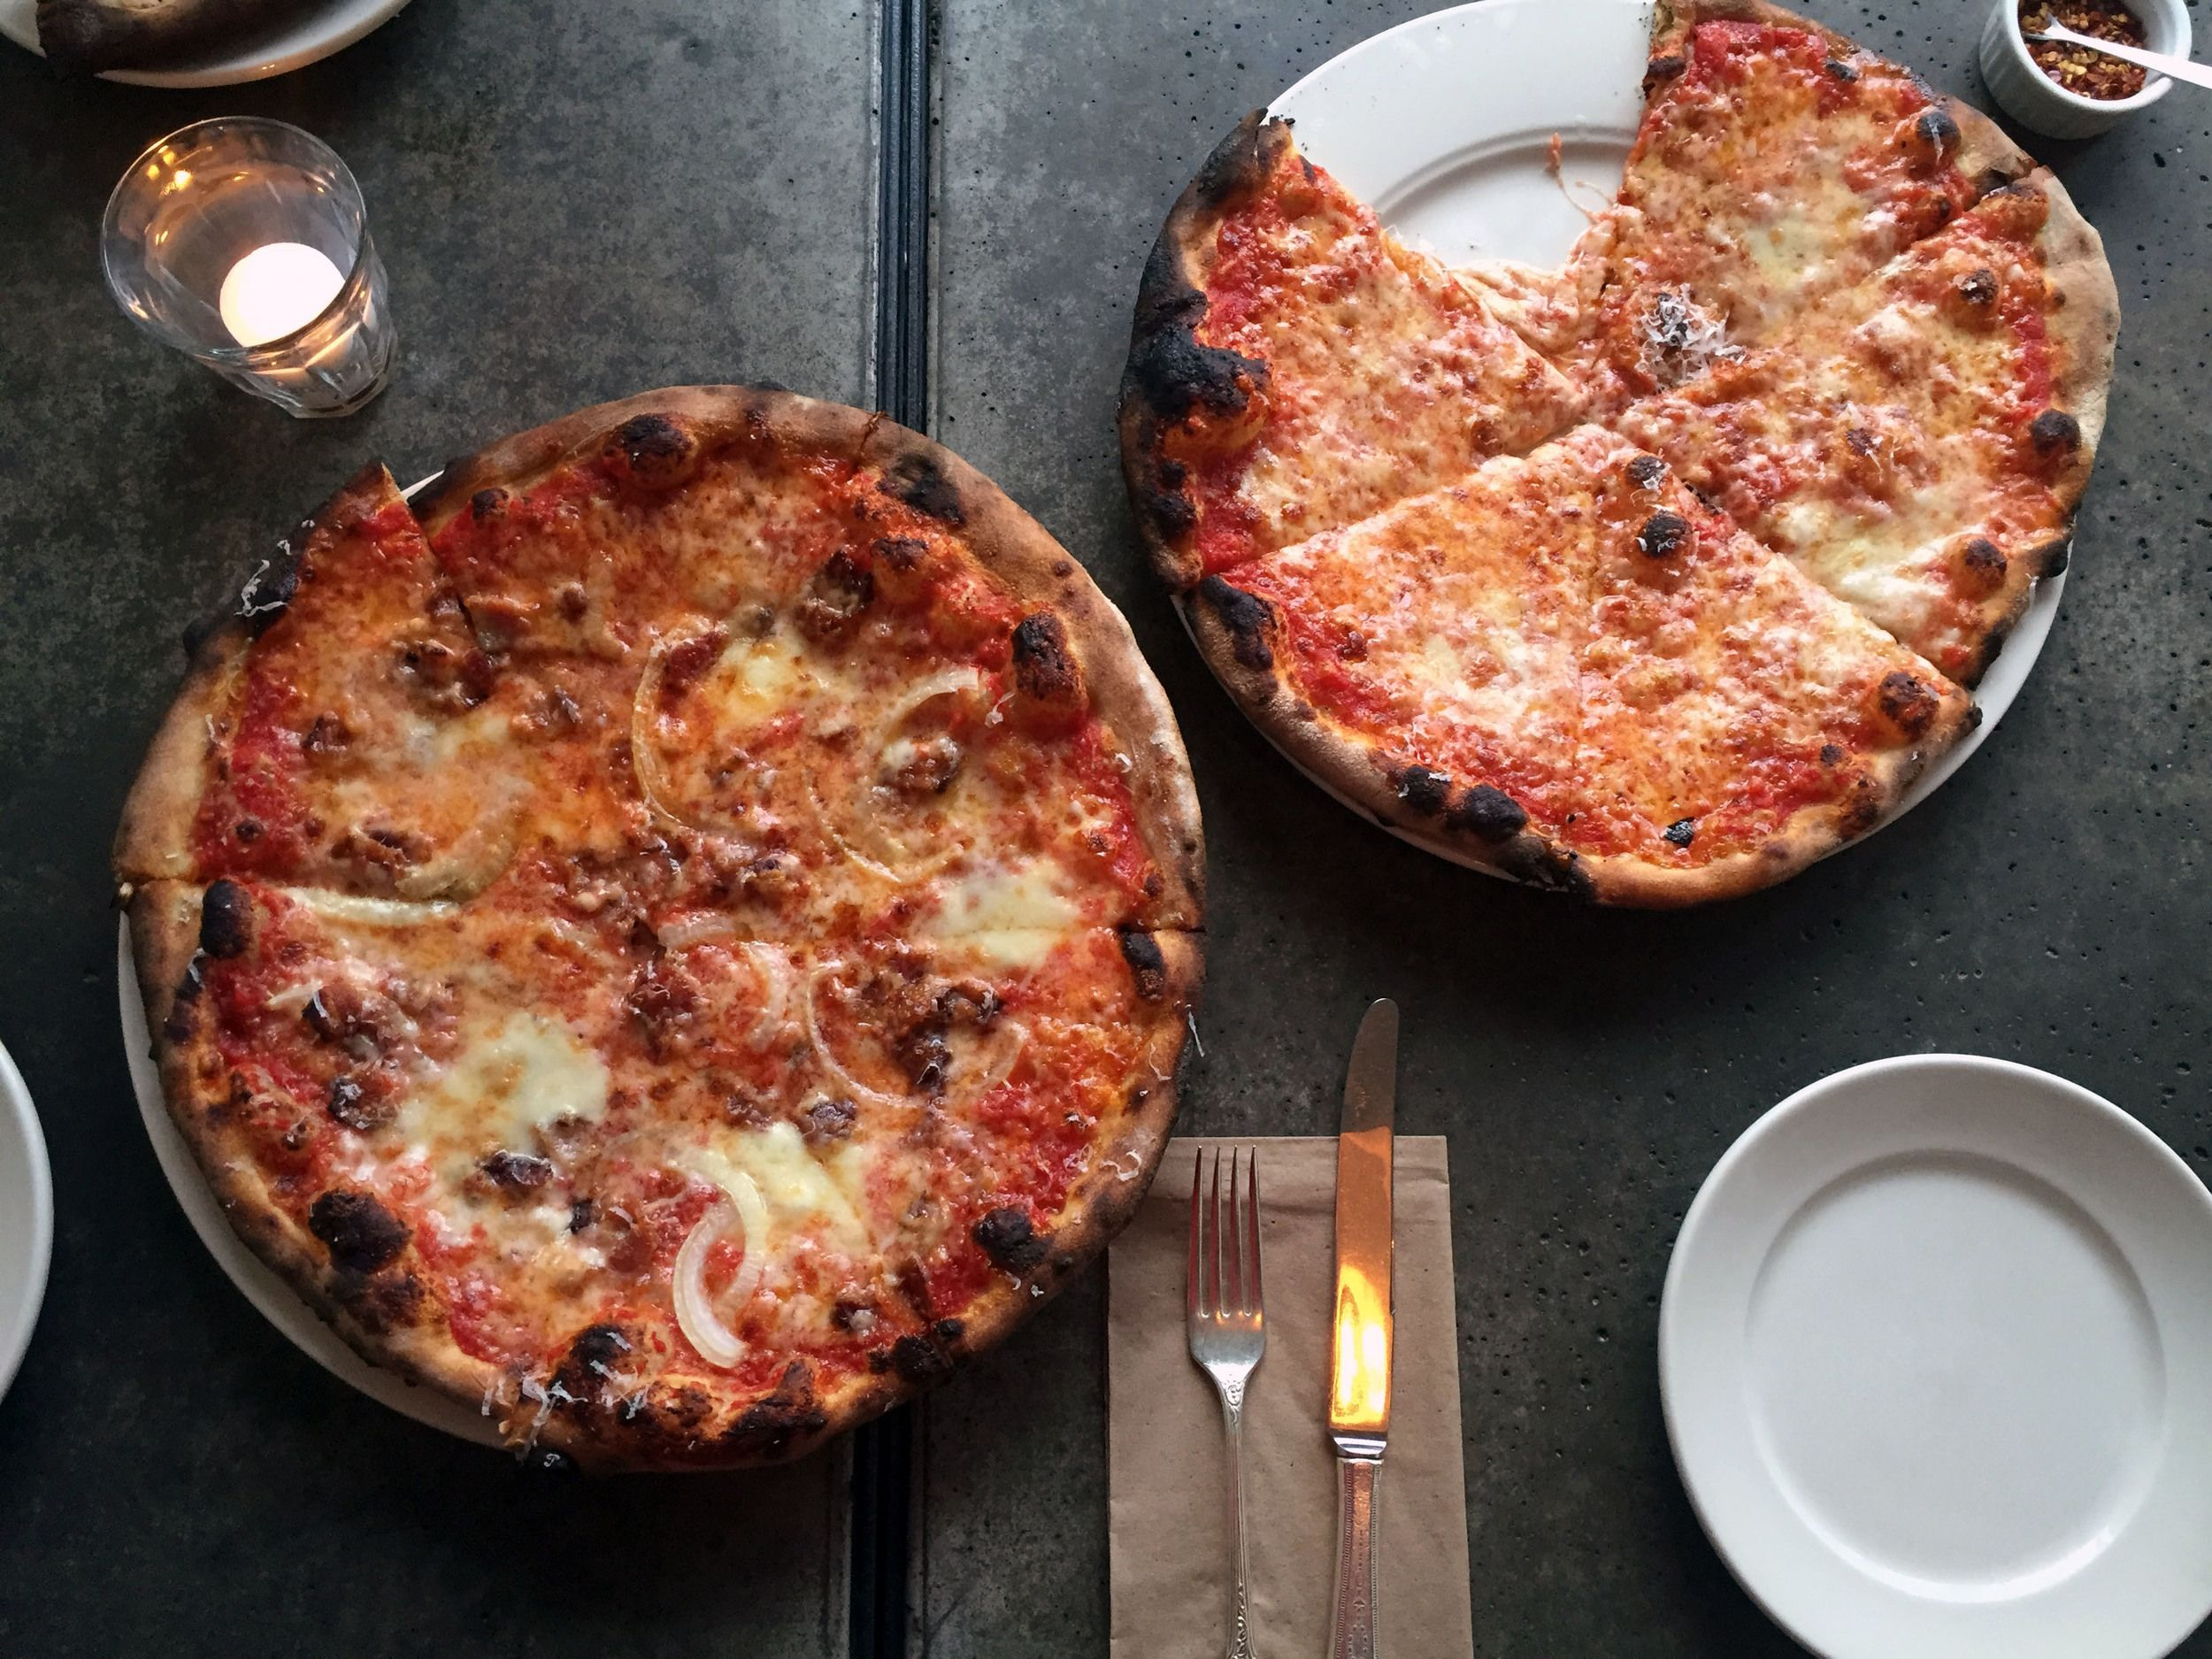 Delancey review — Table Manners Aside: A Seattle Food Blog